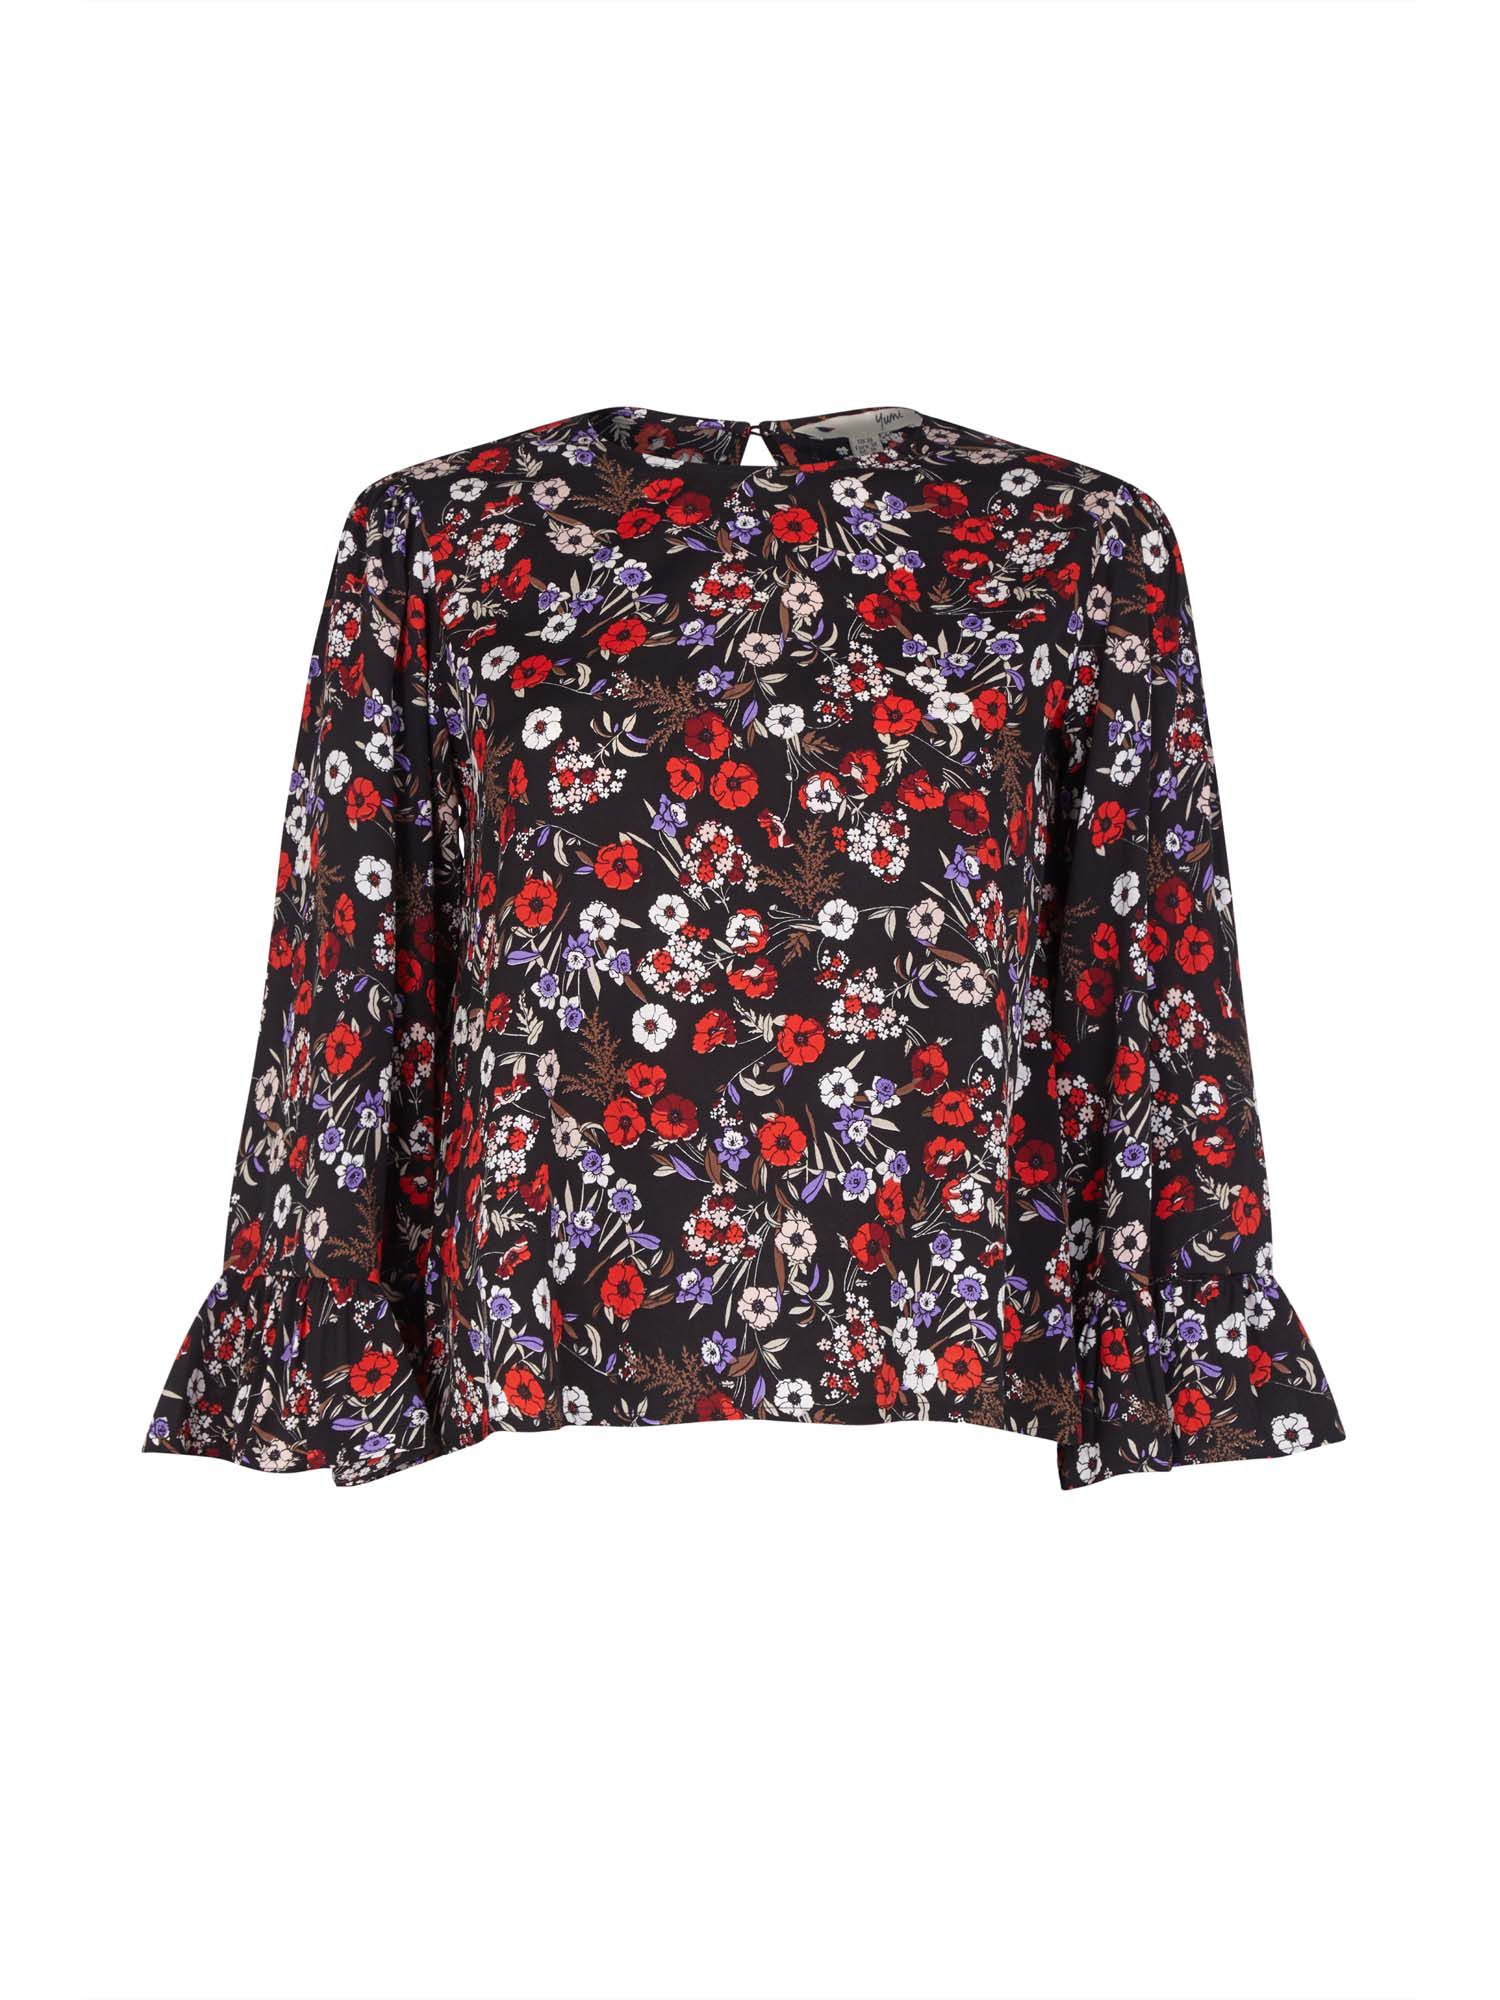 Yumi Curves Ditsy Poppy Fluted Sleeve Top, Black